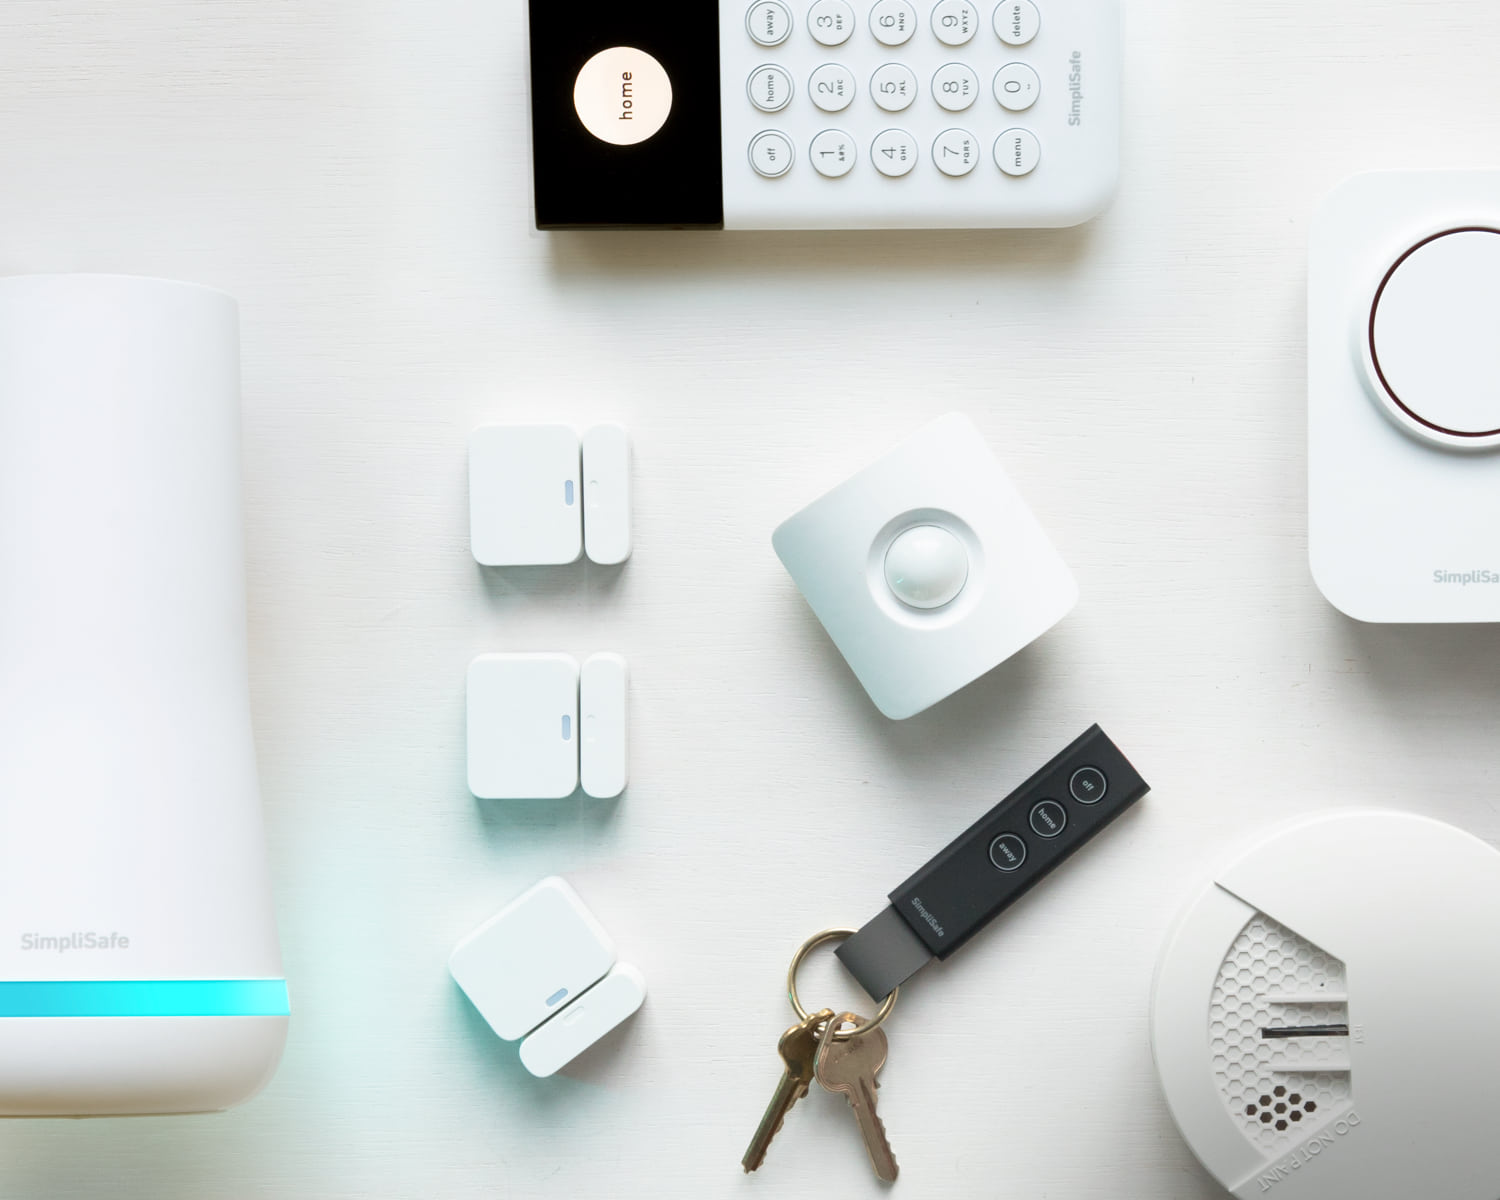 SimpliSafe Lets You Customize Your Home Security System